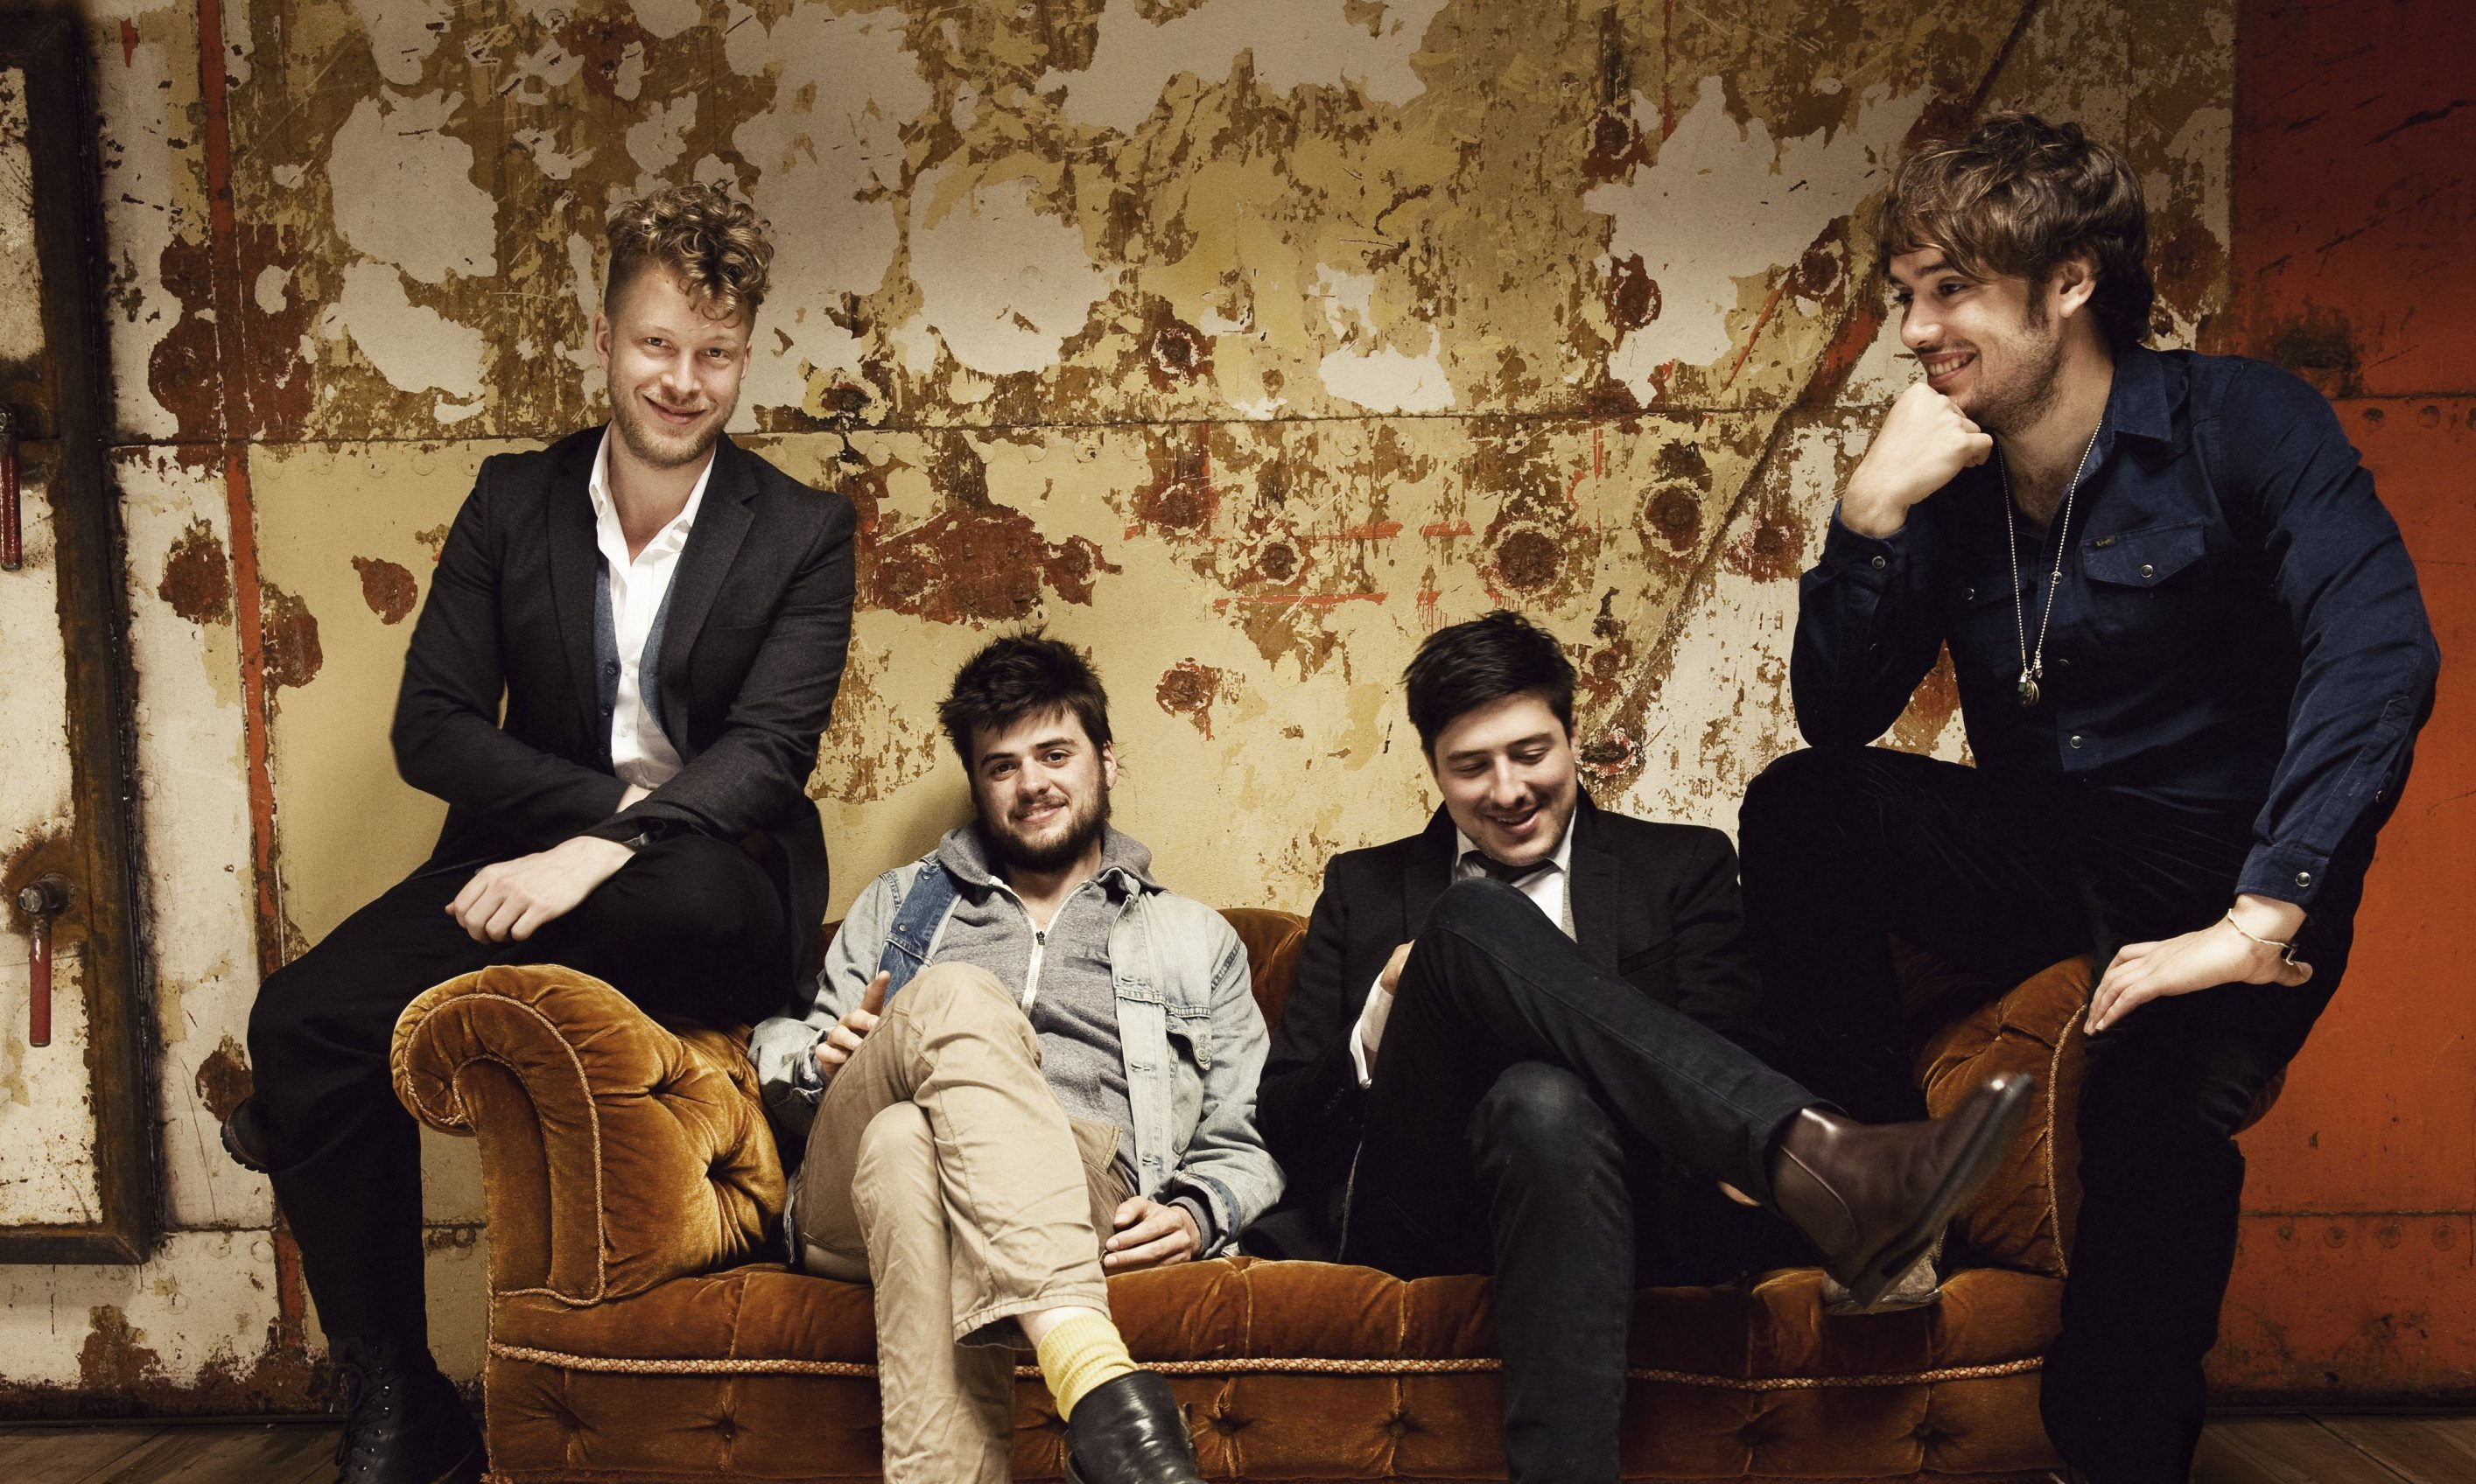 Mumford & Sons Announce New Album 'Delta', Share 'Guiding Light'